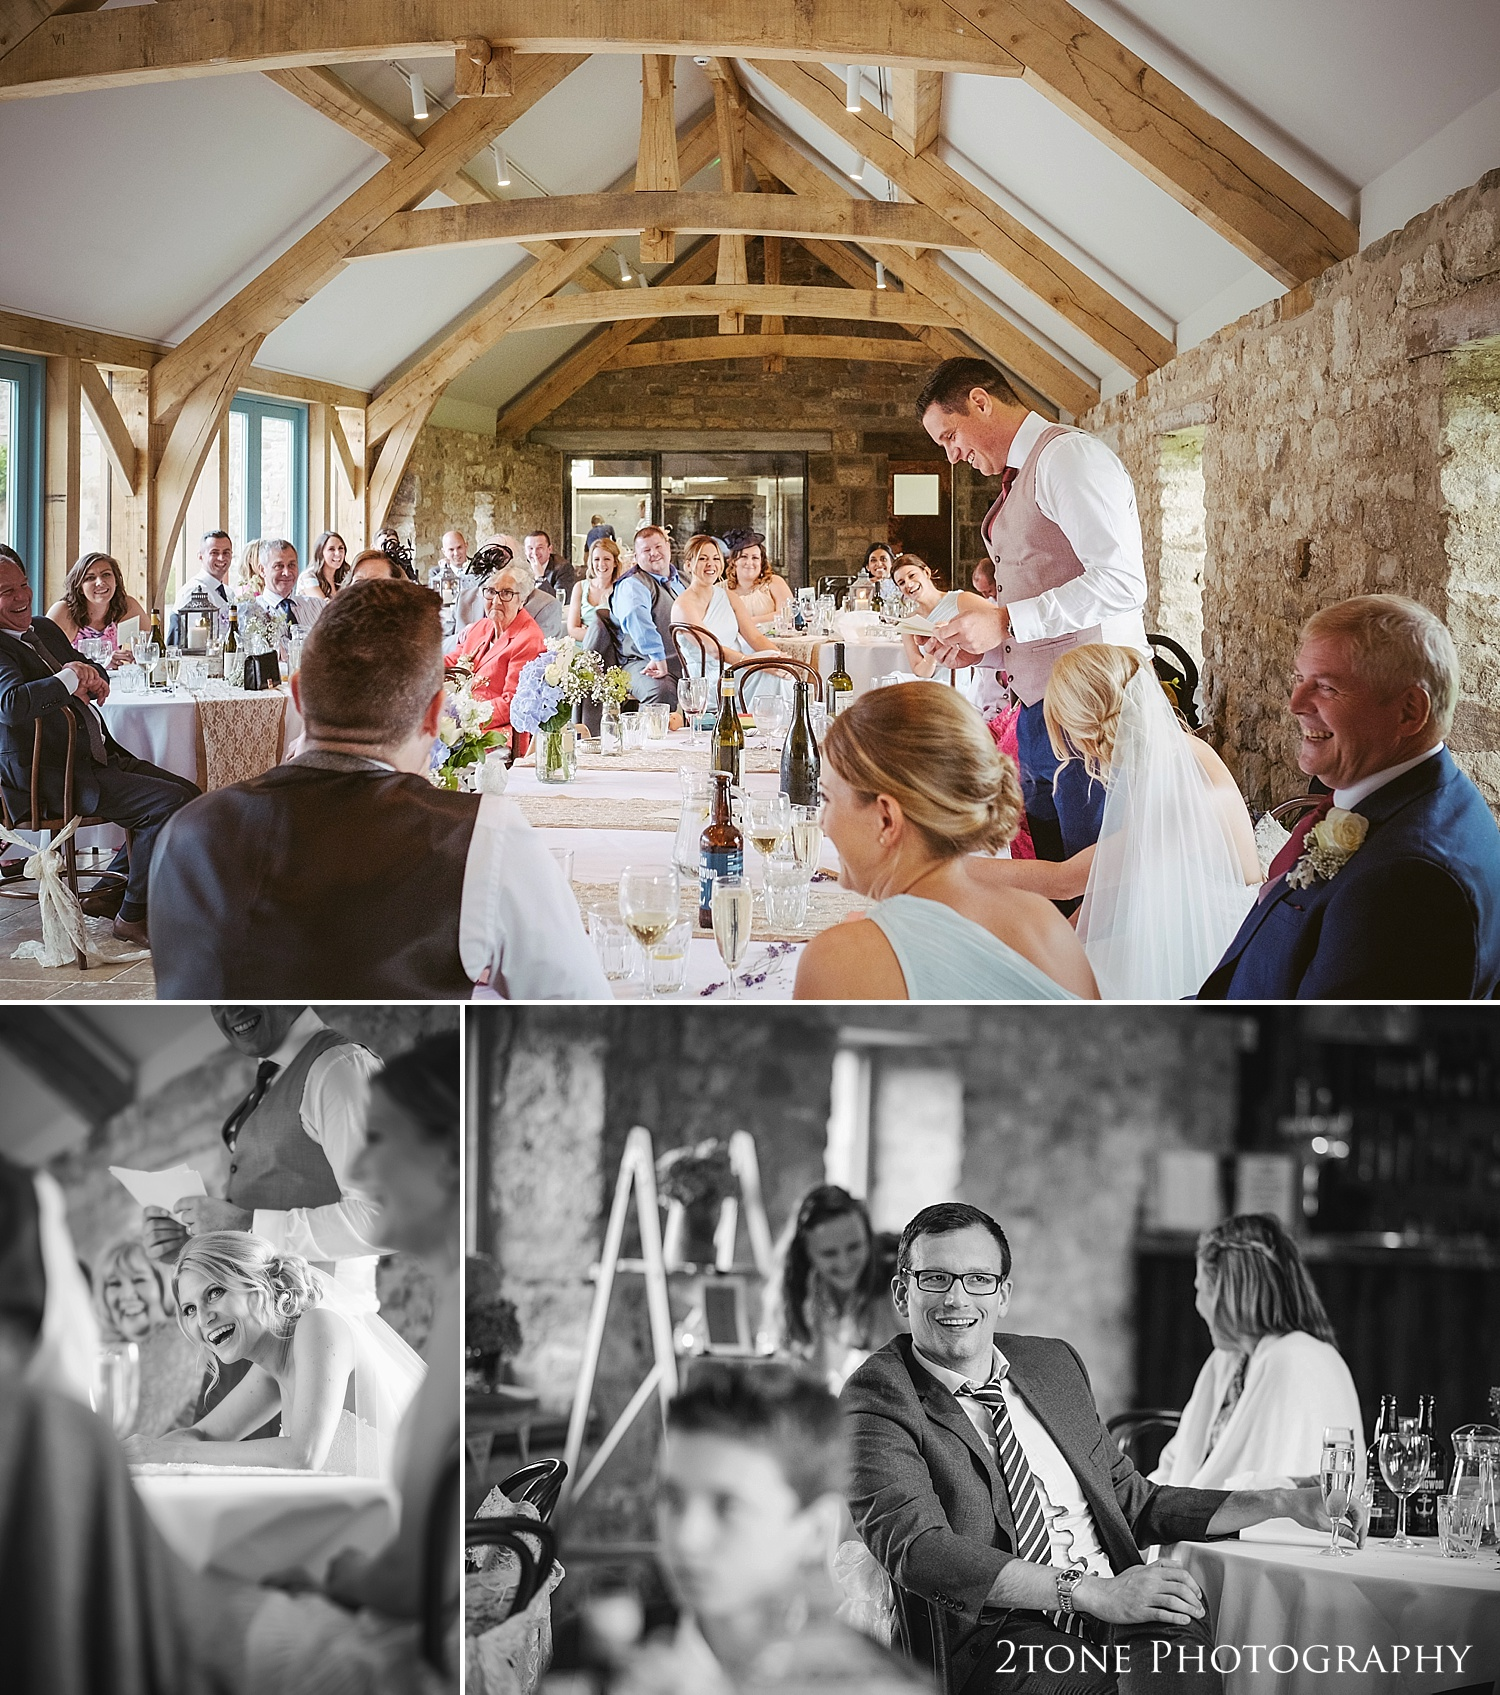 Wedding day speeches at Healey Barn by wedding photography team, 2tone Photography www.2tonephotography.co.uk